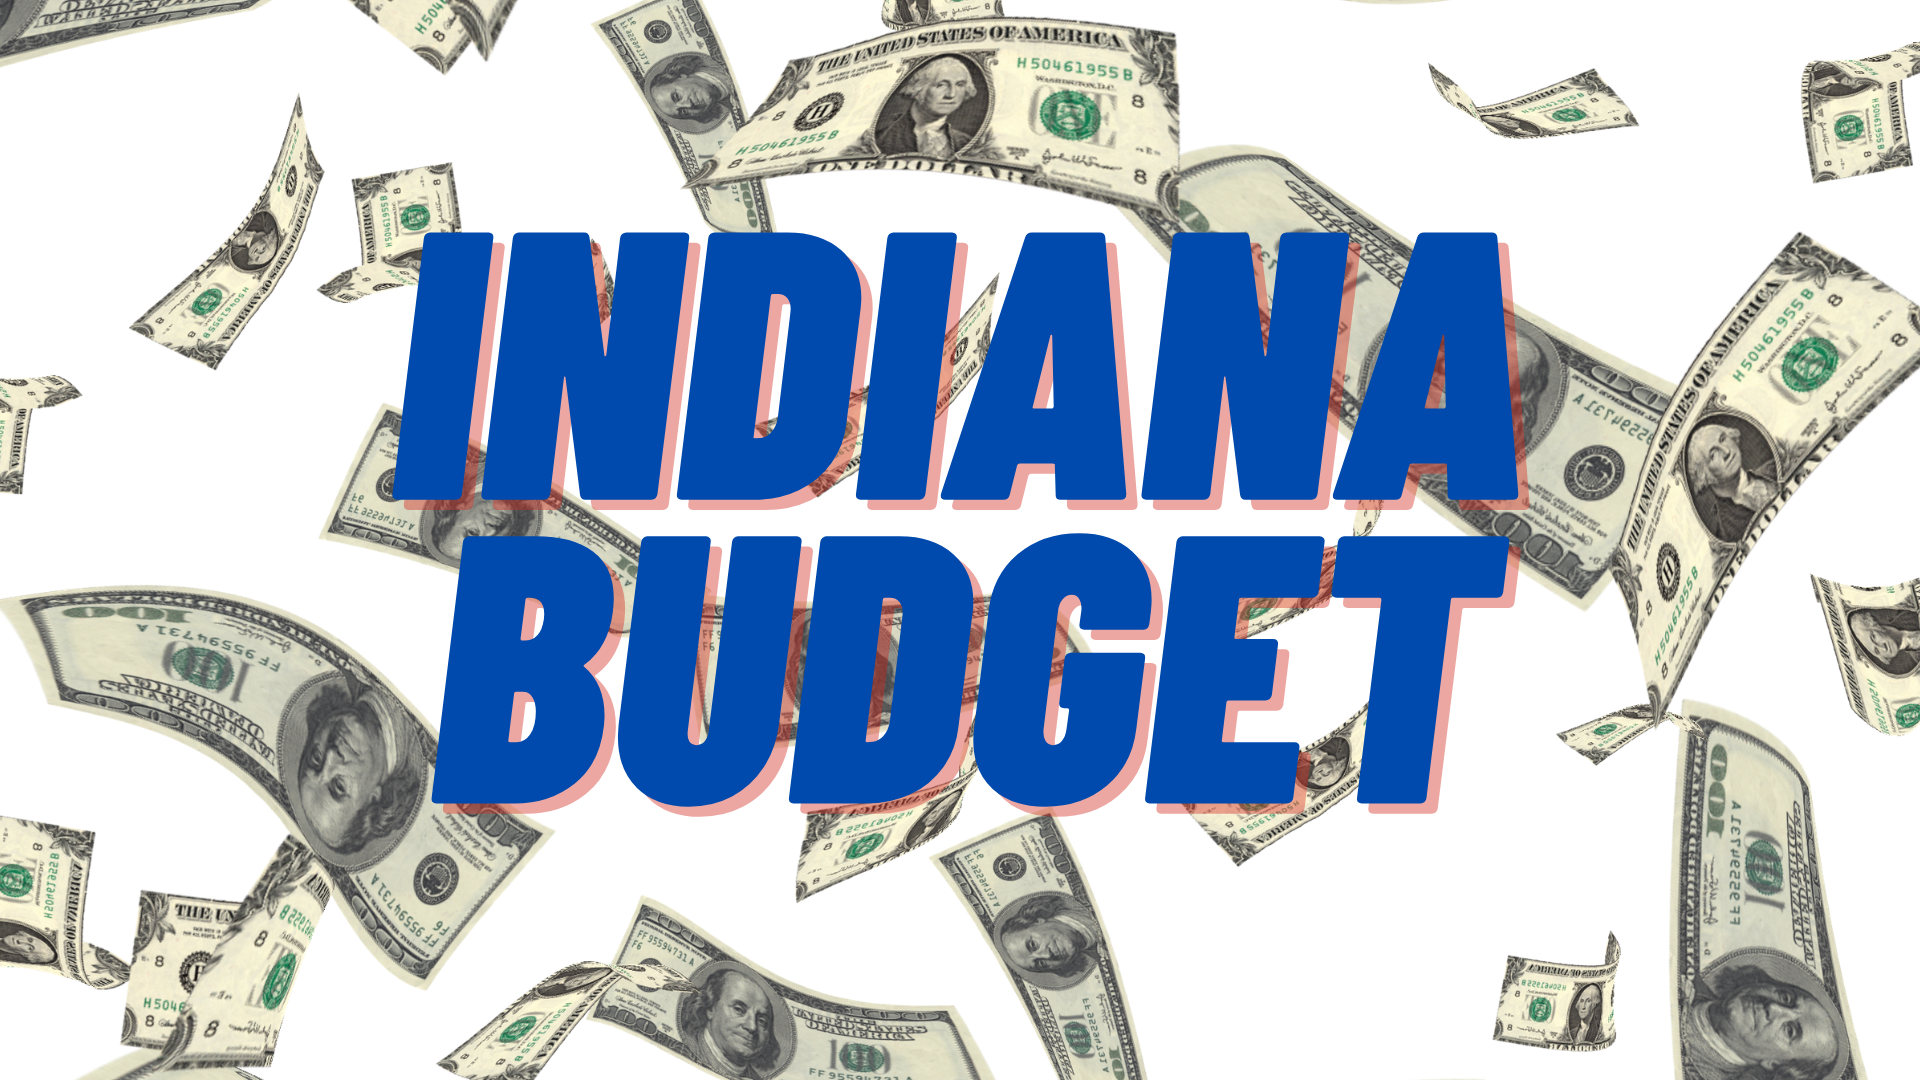 Indiana's Two Year Budget Focuses on Education